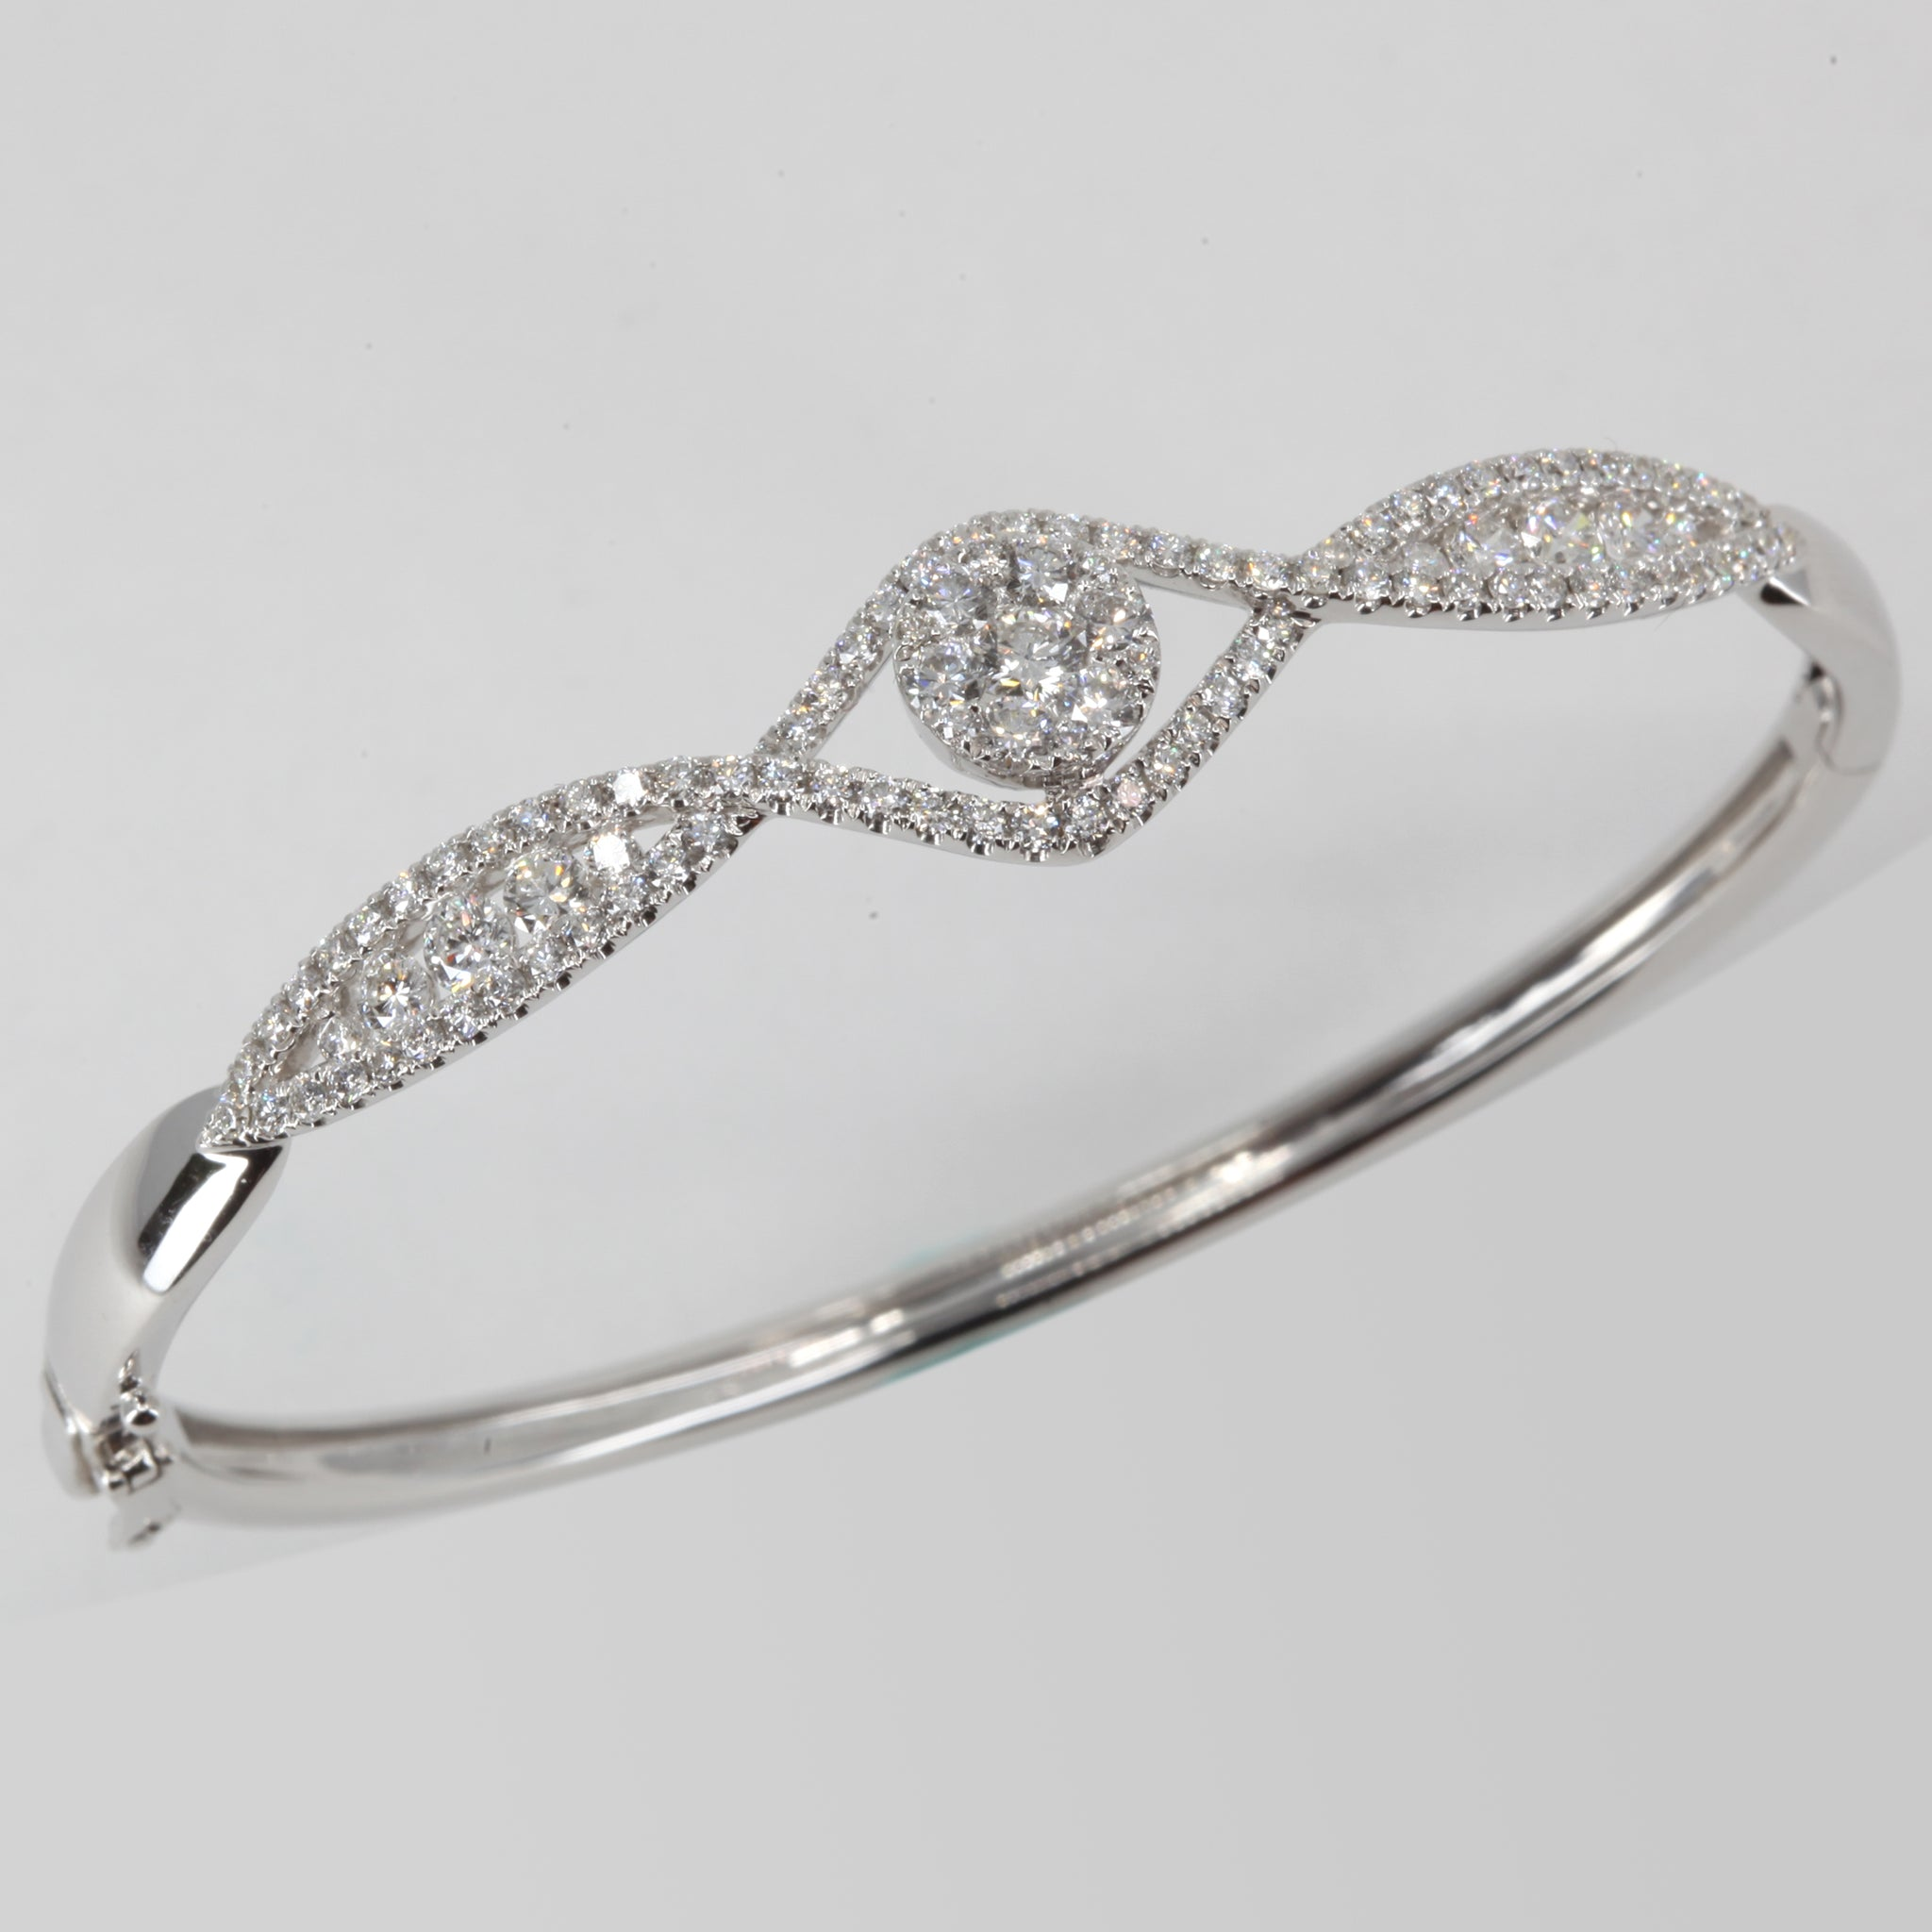 18K Solid White Gold Diamond Bangle 1.98 CT